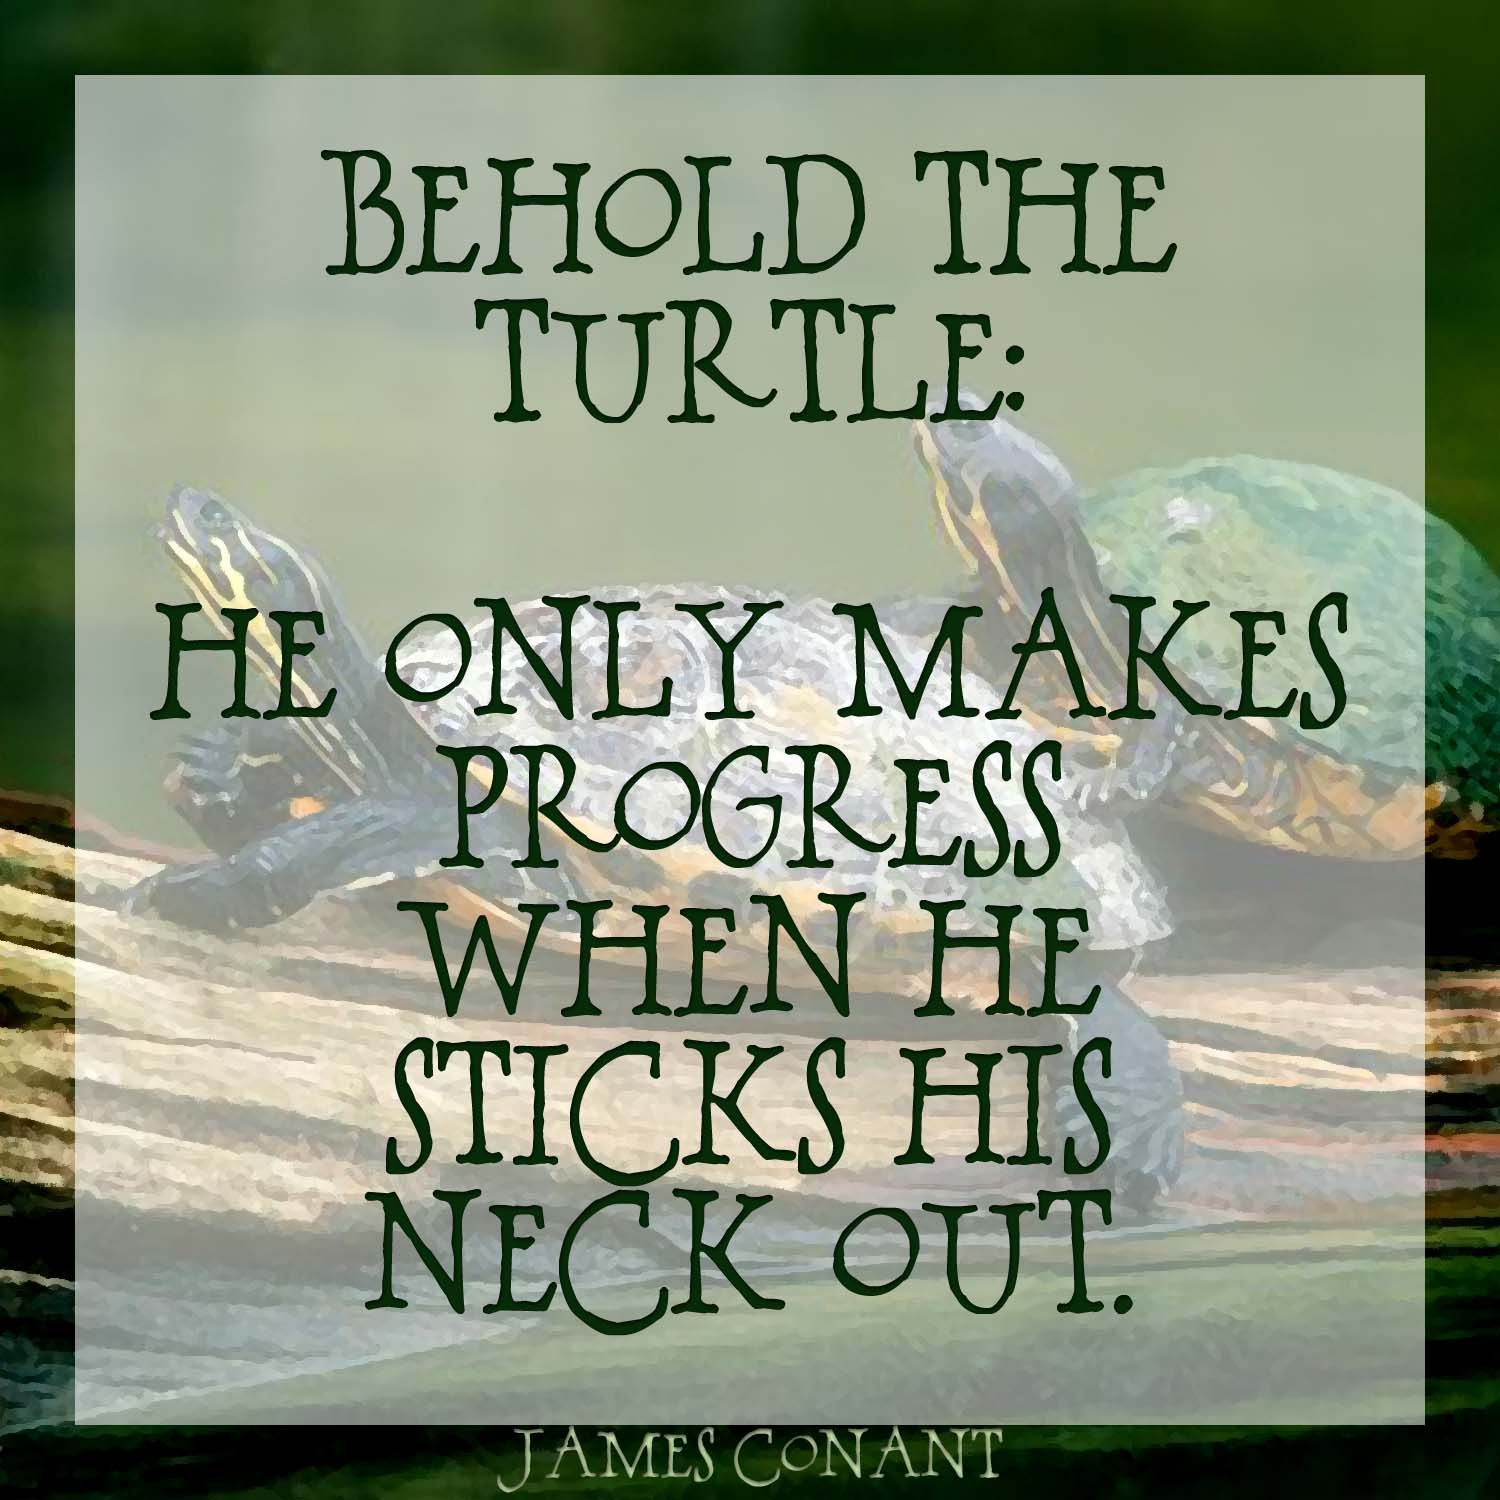 Sometimes you have to move like a turtle and stick your neck out a sometimes you have to move like a turtle and stick your neck out a bit biocorpaavc Choice Image